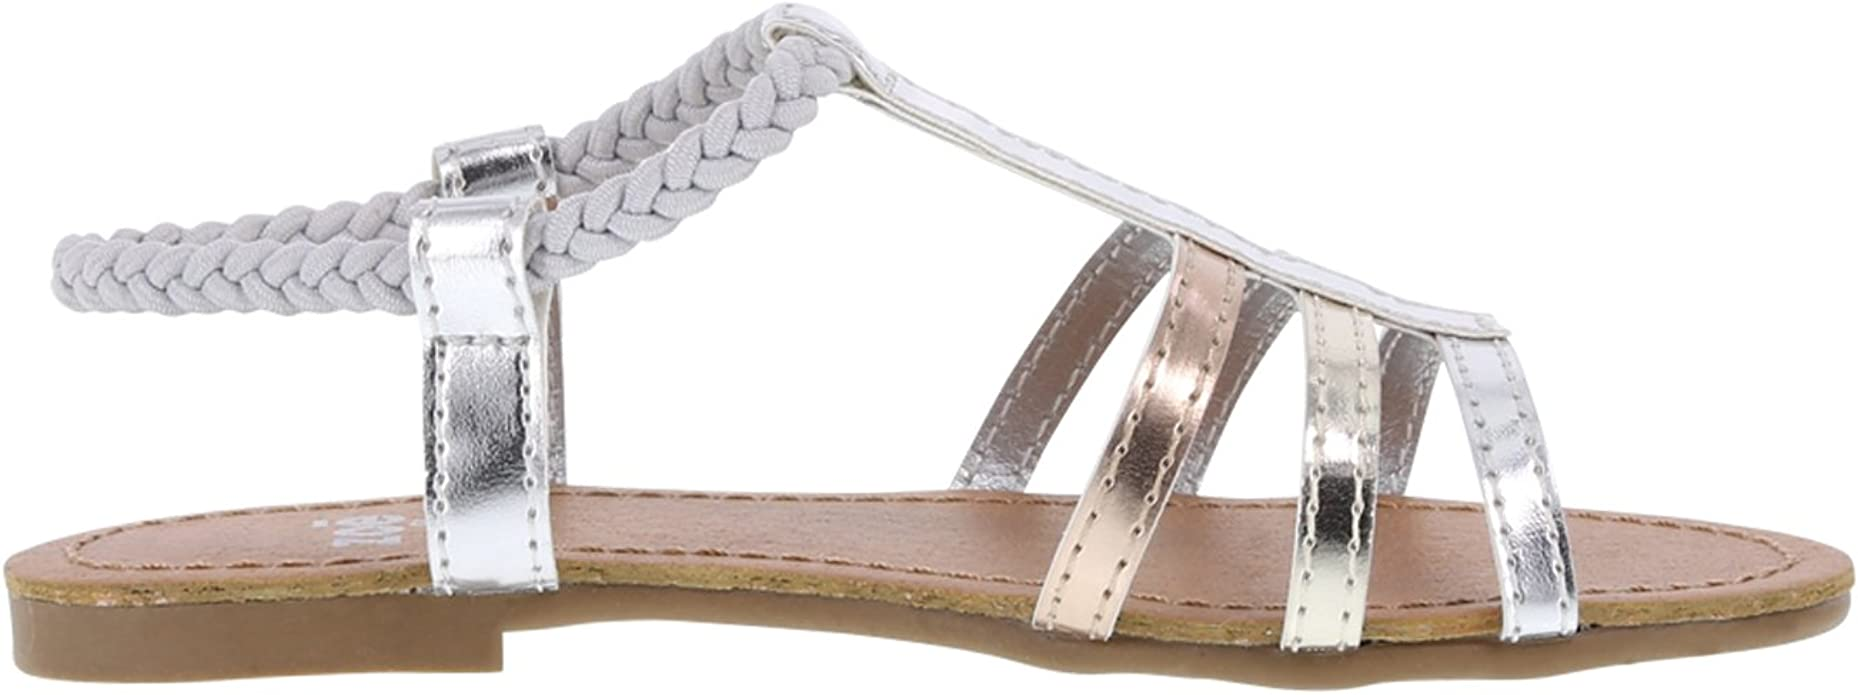 La Redoute Collections Big Girls Woven Leather Sandals